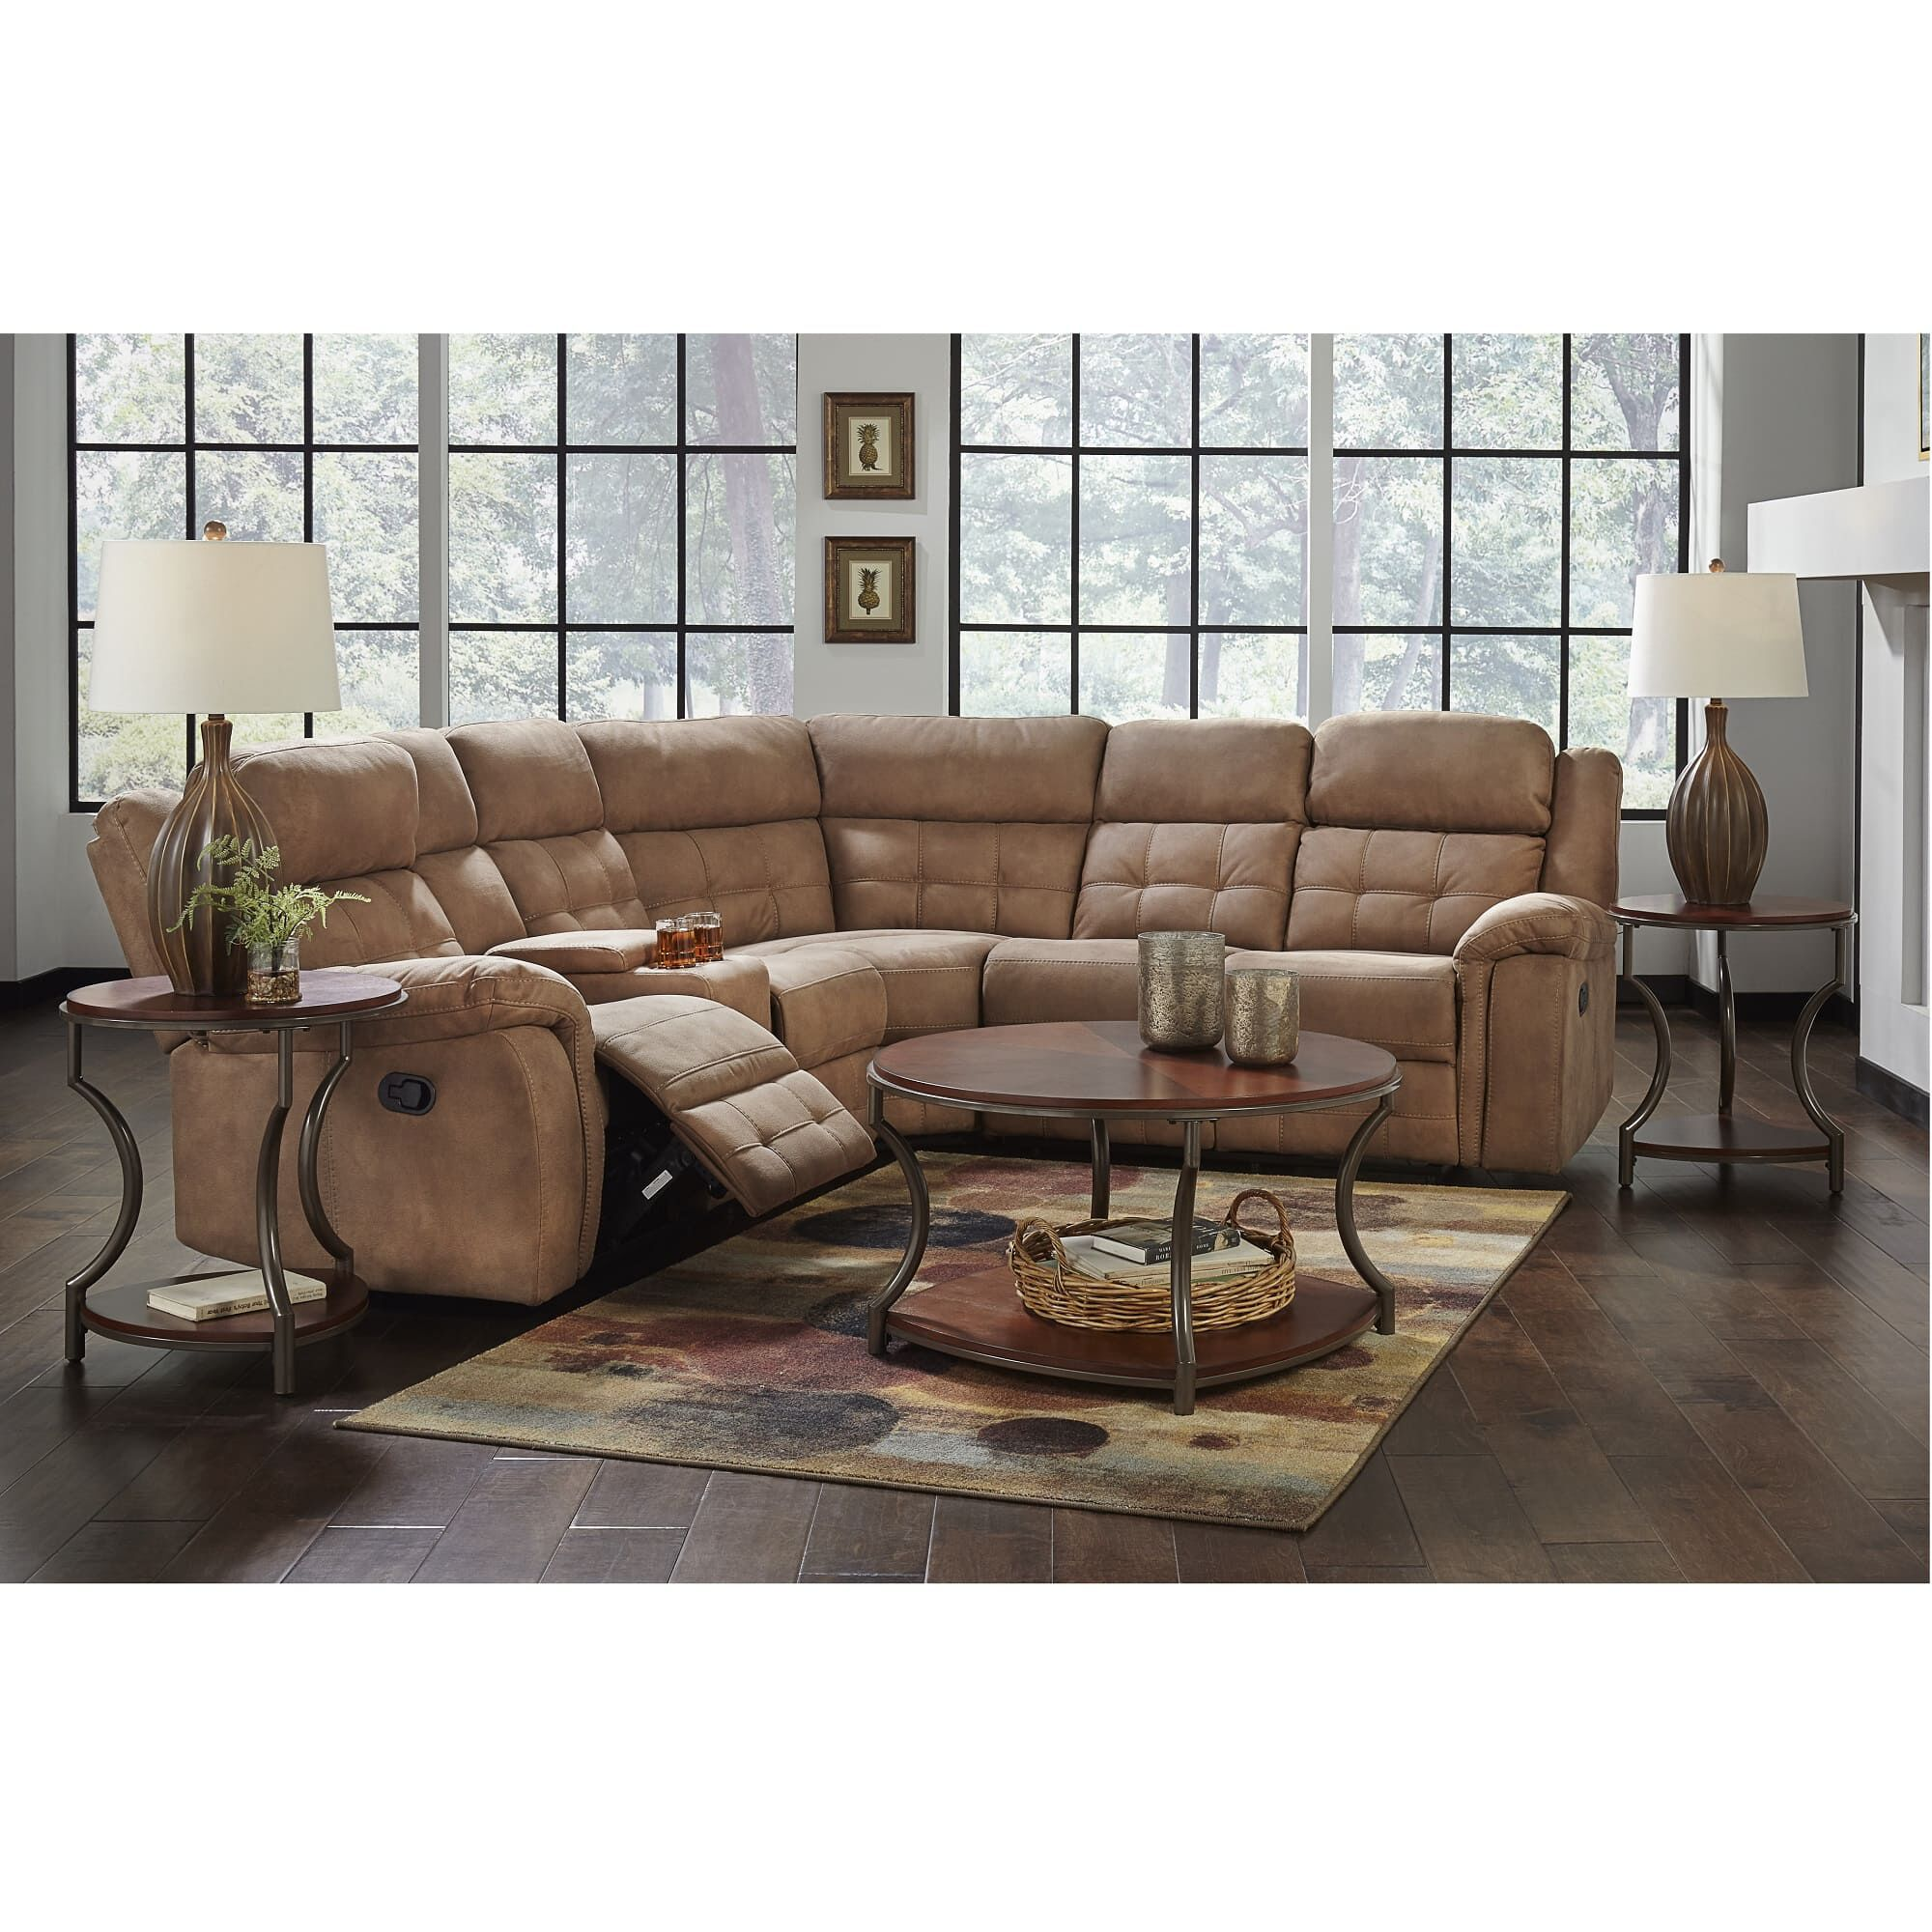 Amalfi Sectional Sets 8 Piece Cobalt Reclining Living Room